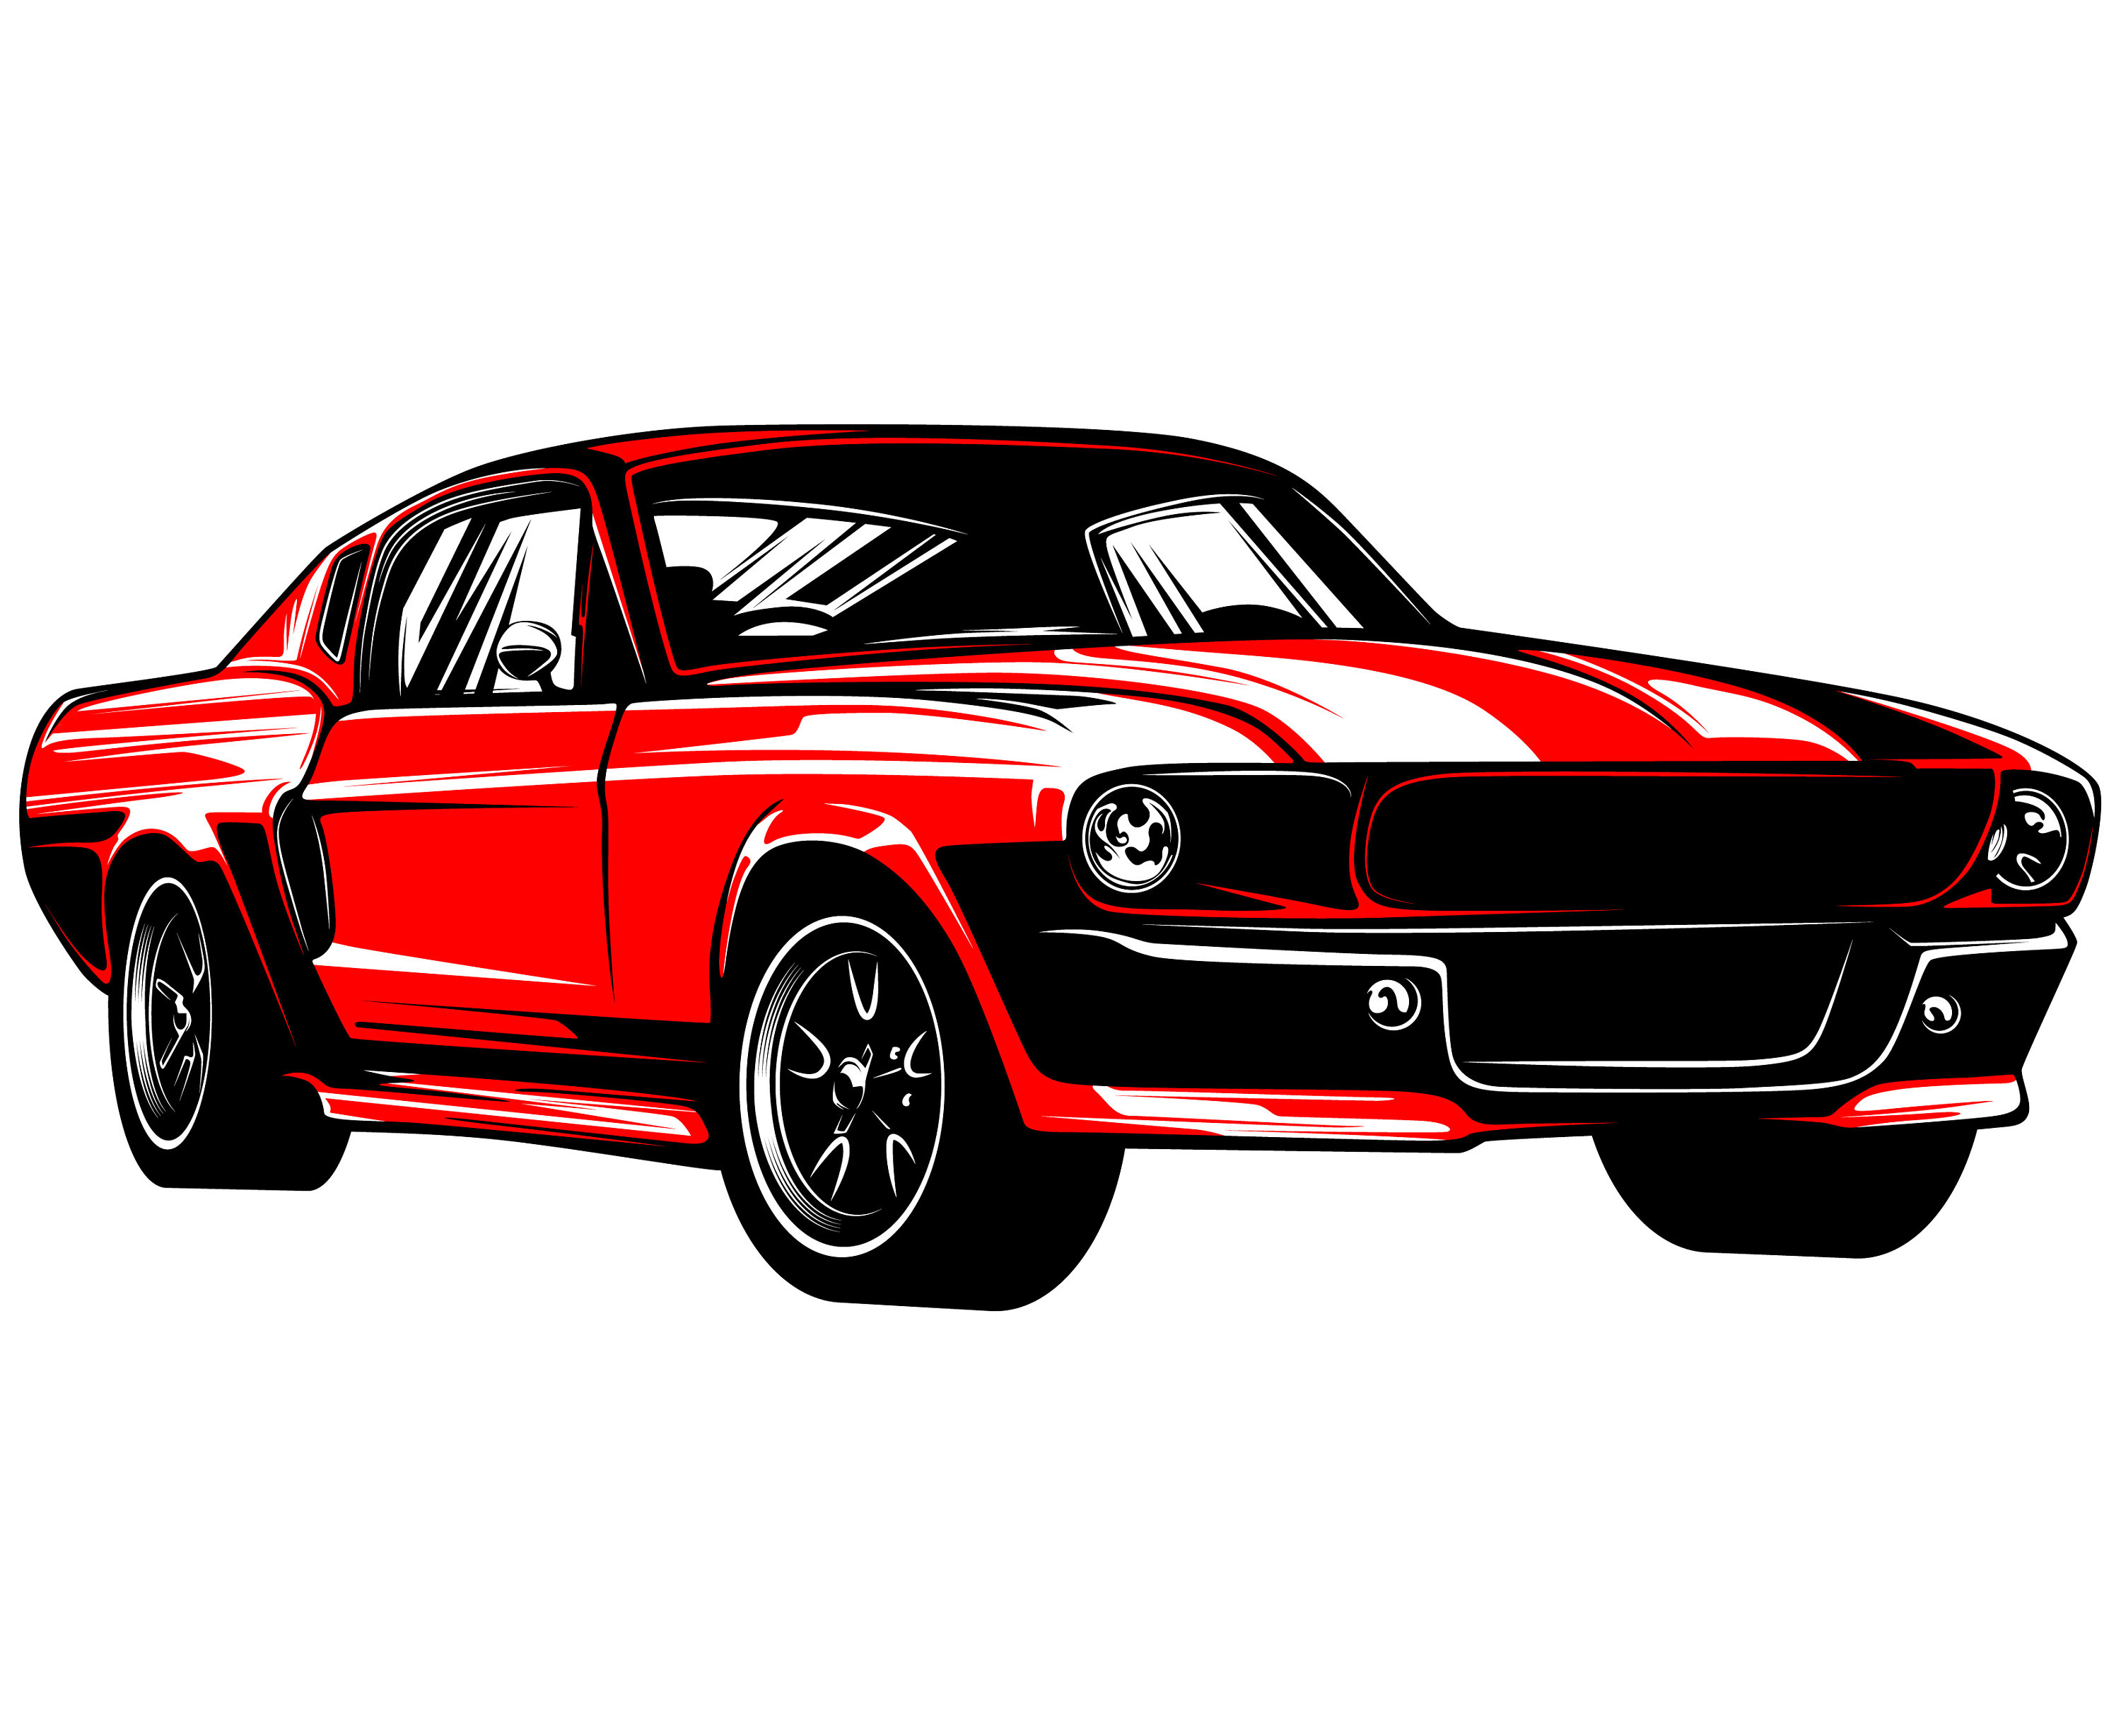 Muscle Car Christmas Cards Www Topsimages Com